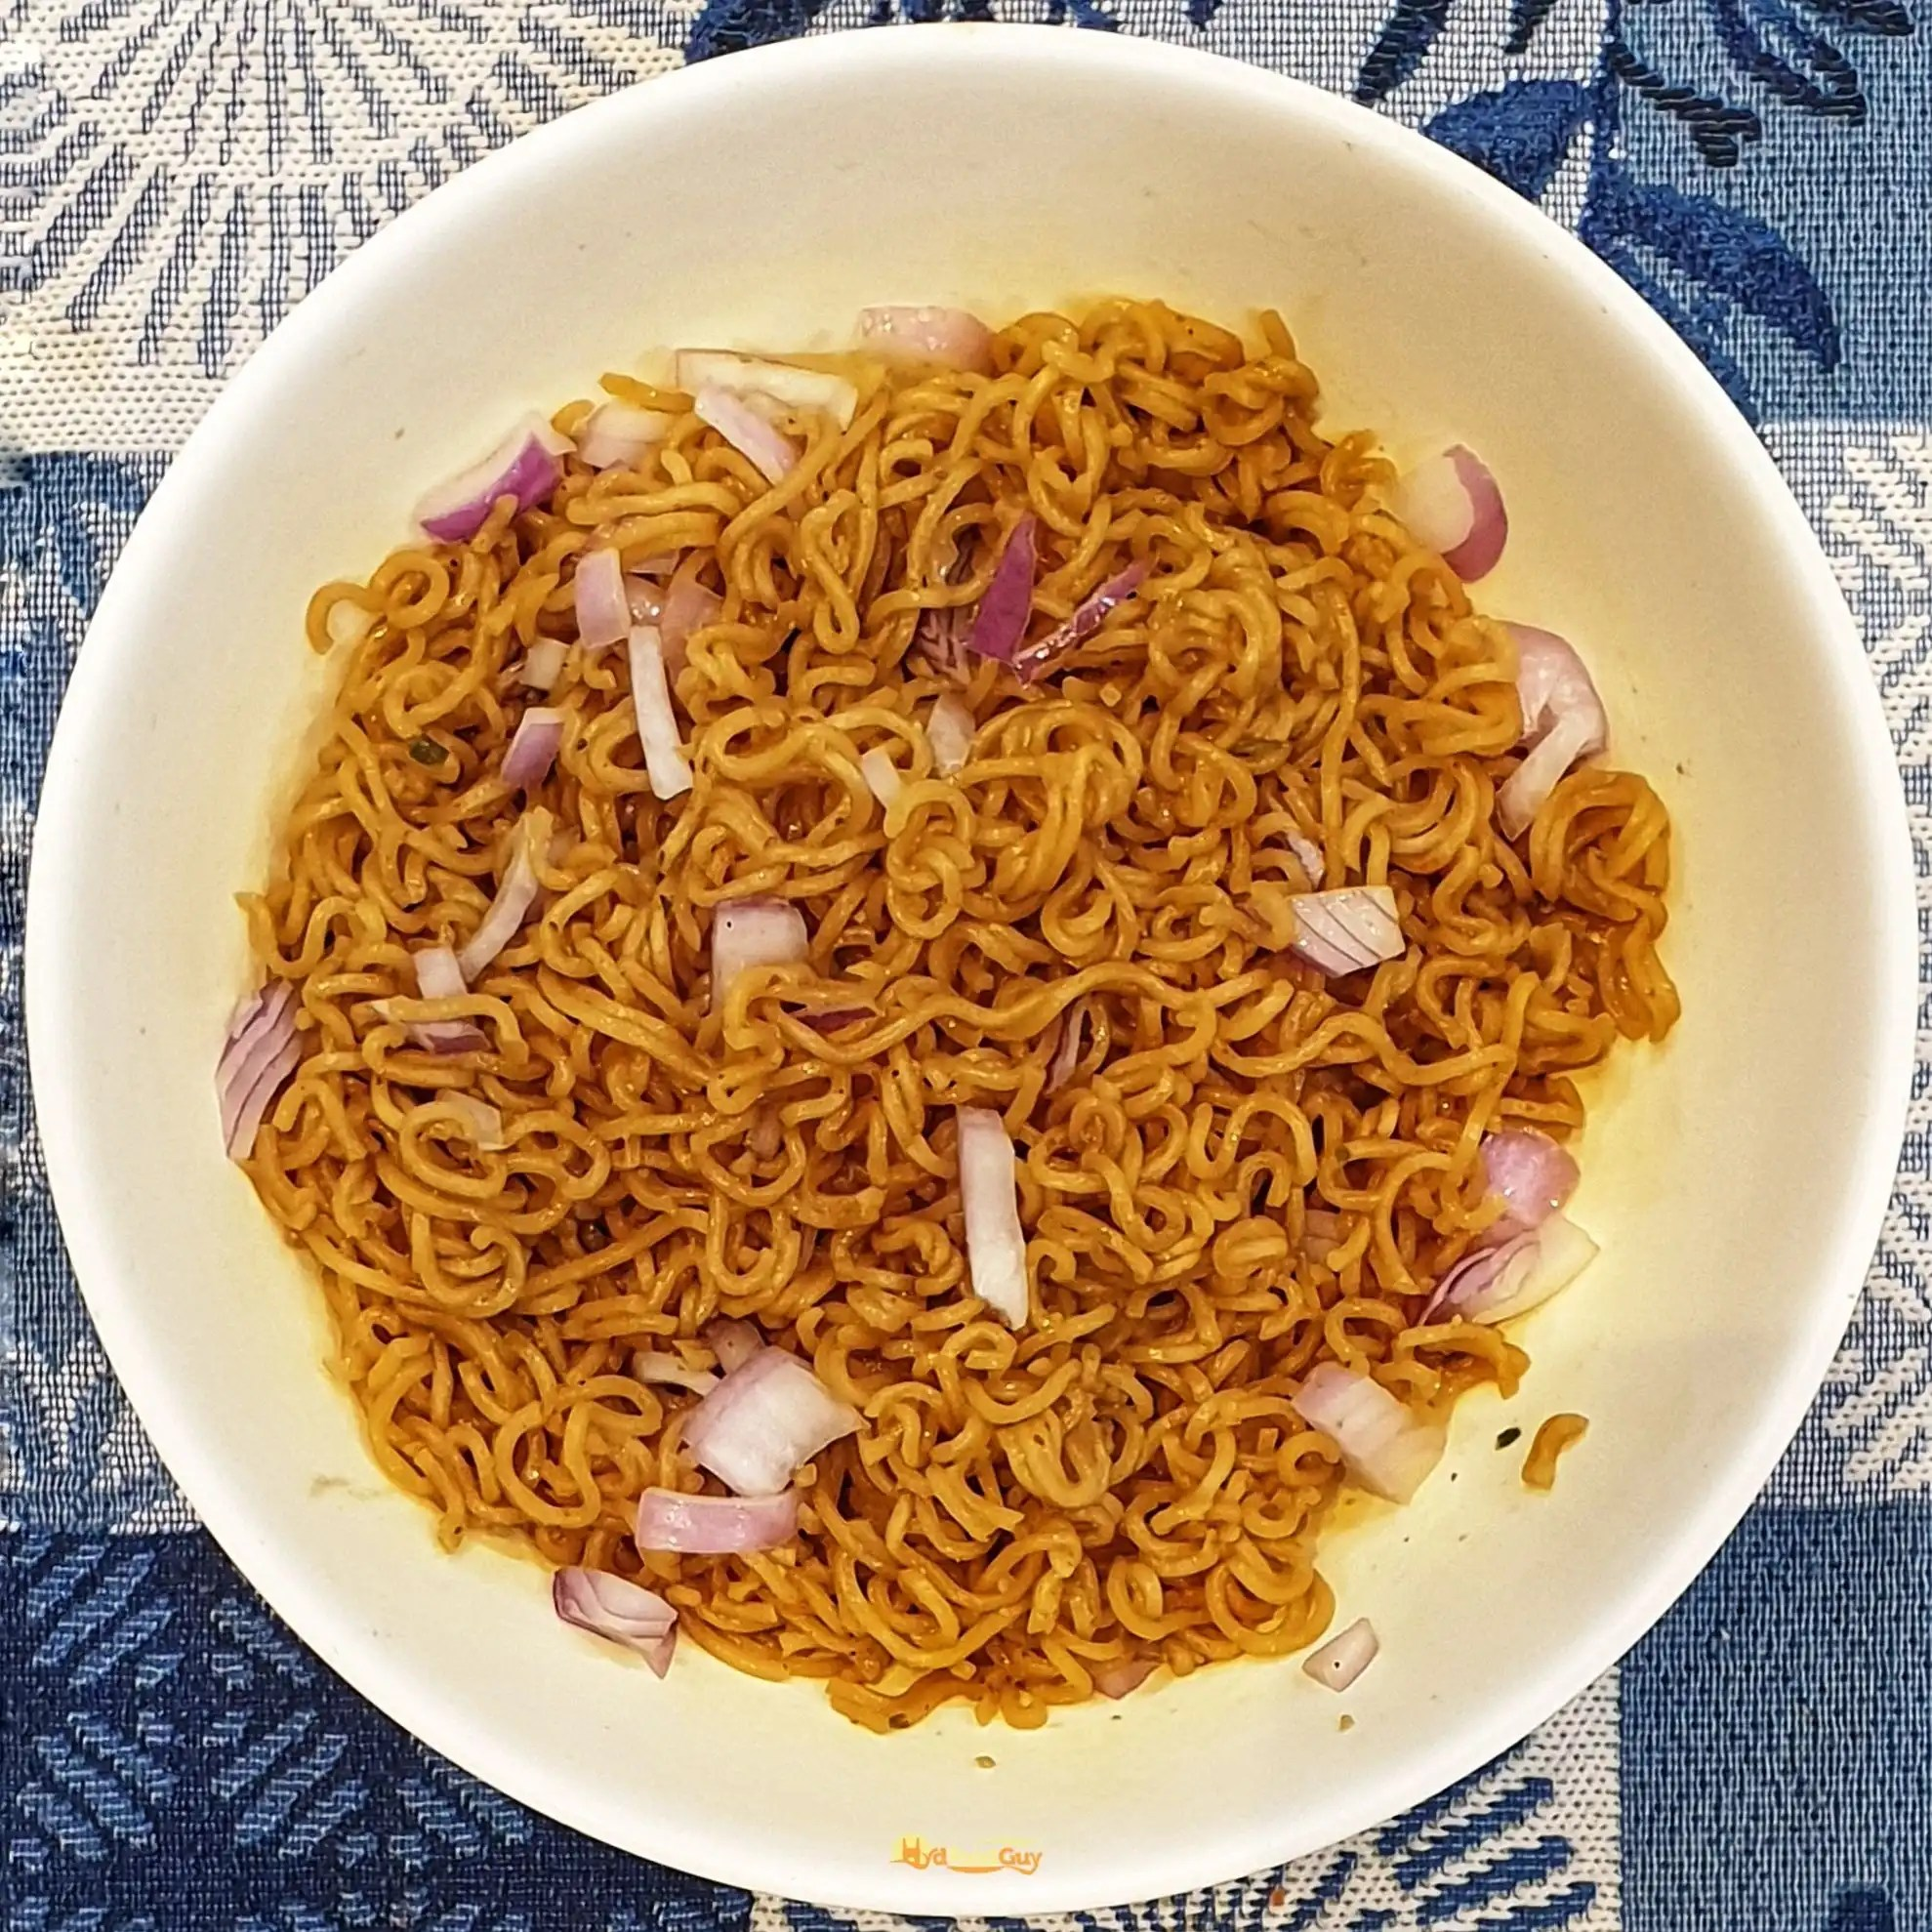 Wai Wai Noodles with Onions